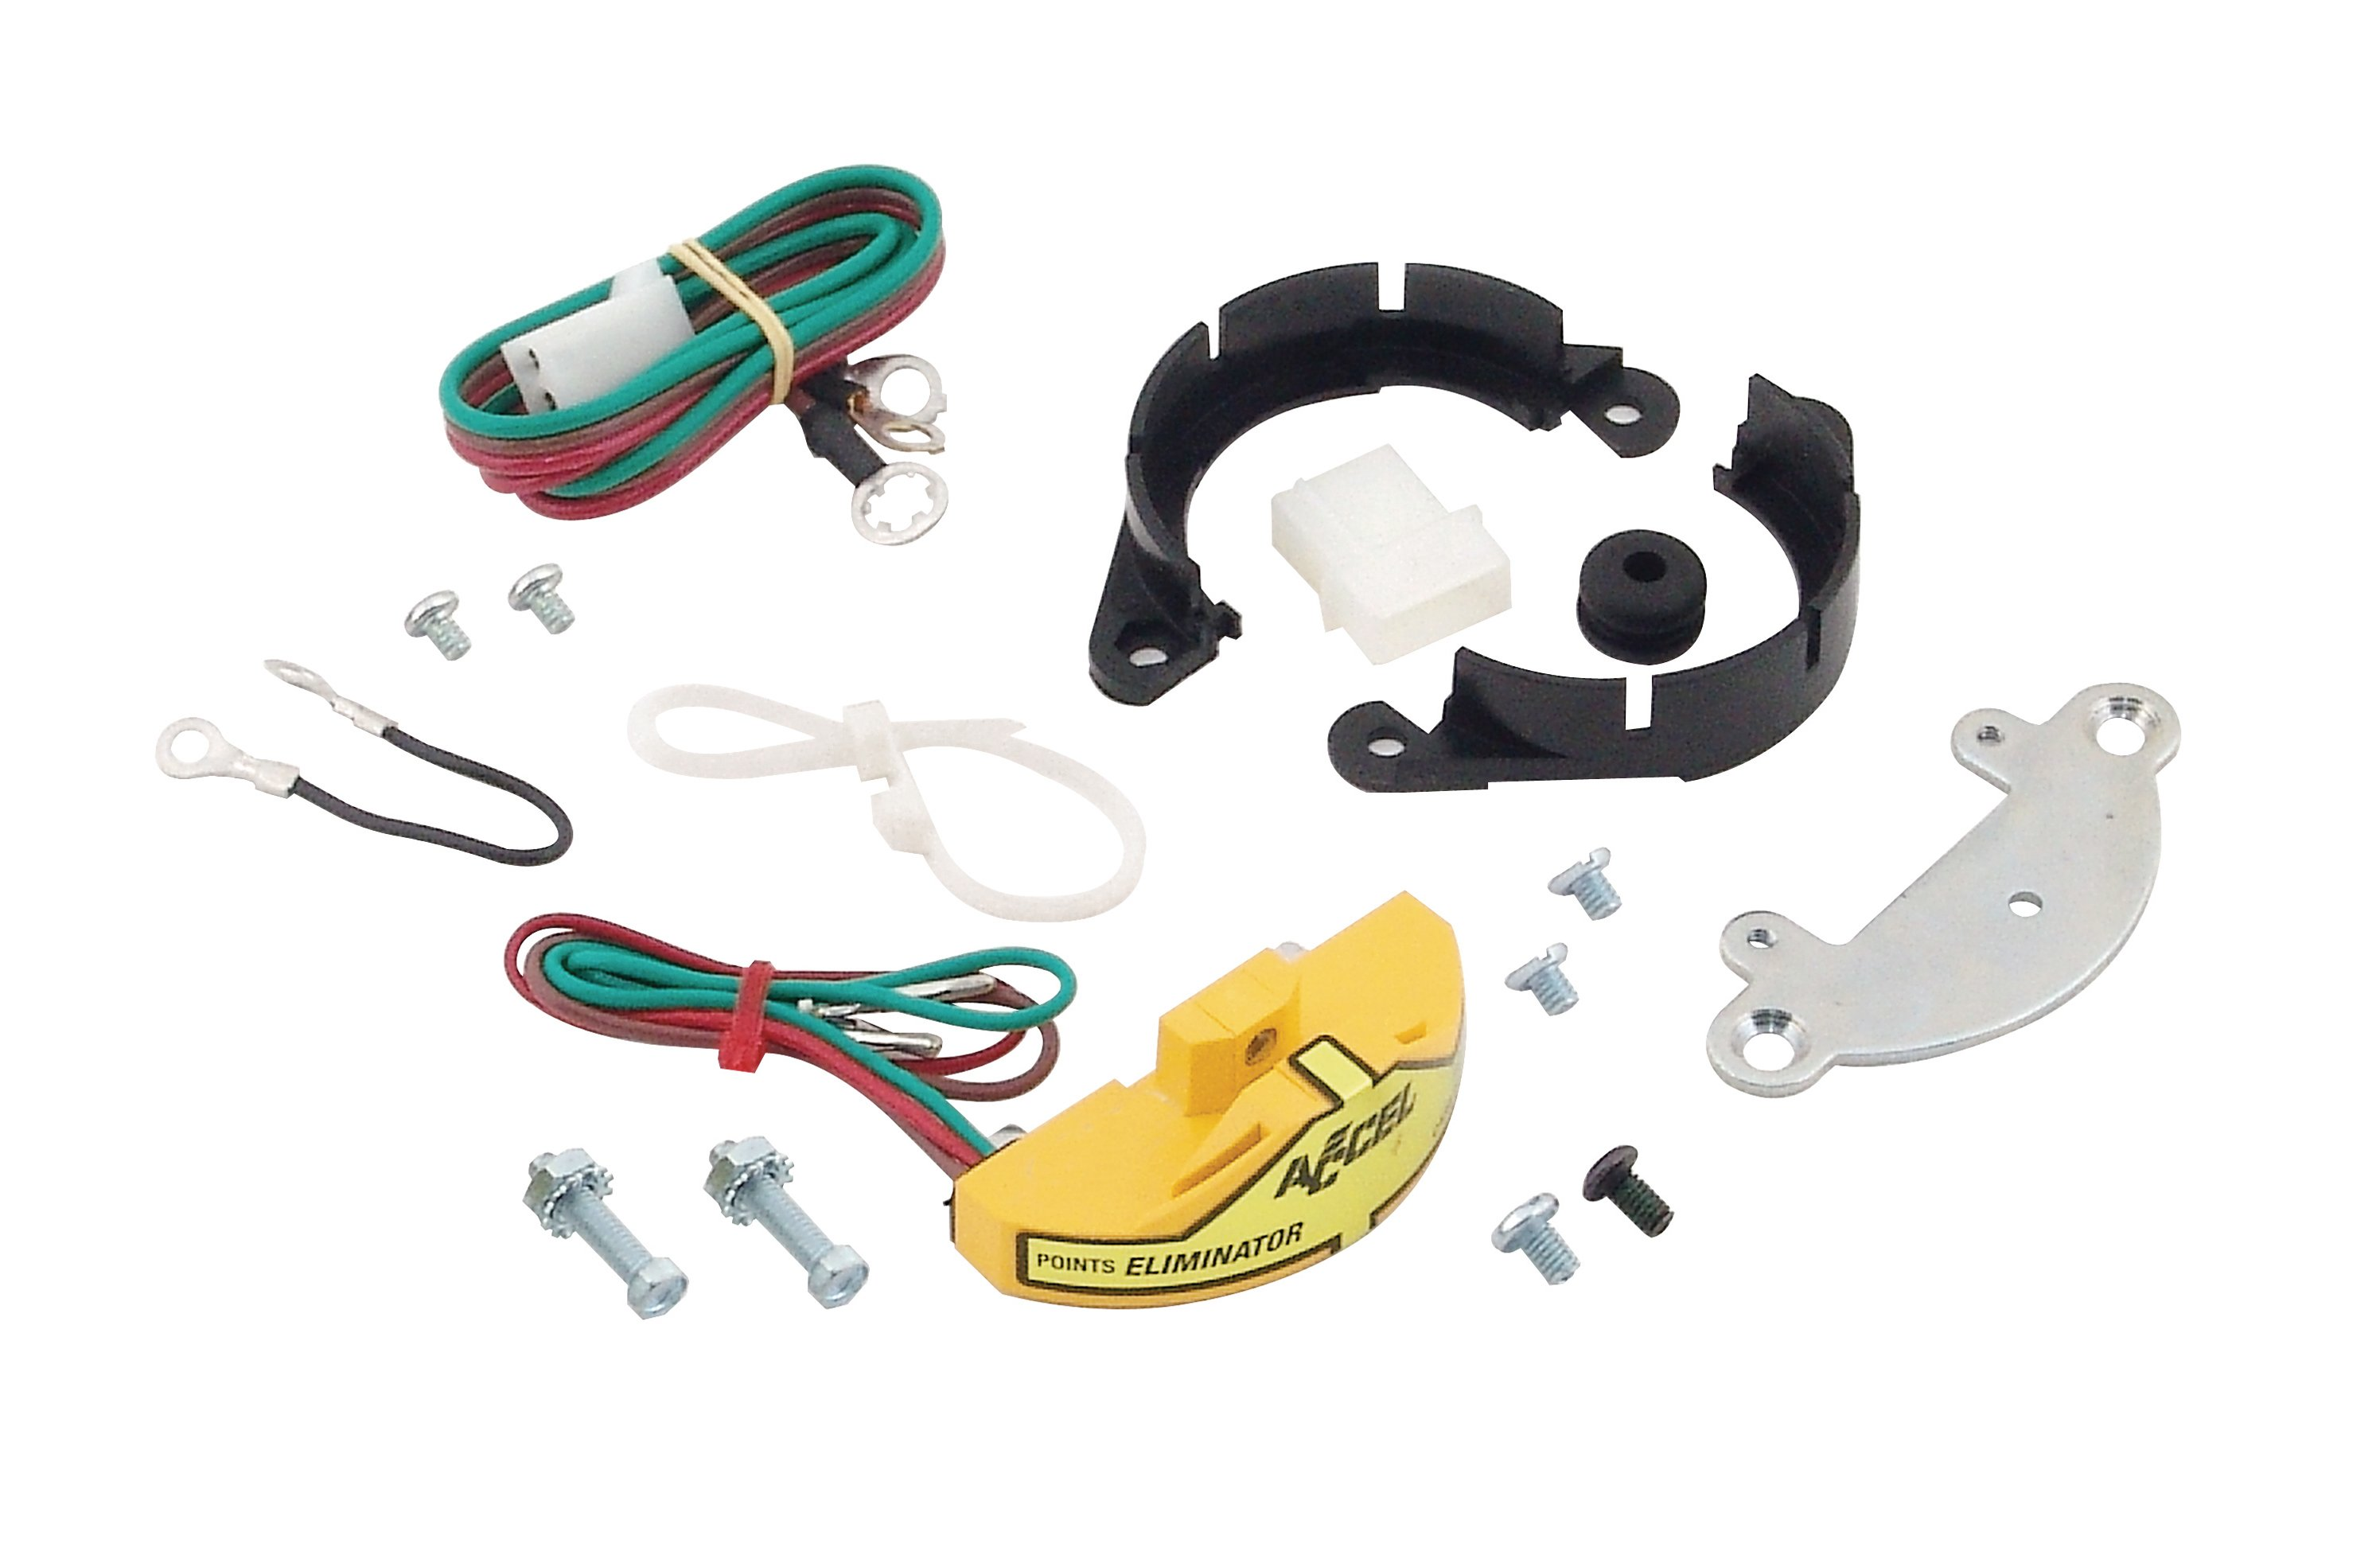 2010ACC - Points Eliminator Kit for GM Points Distributors Image